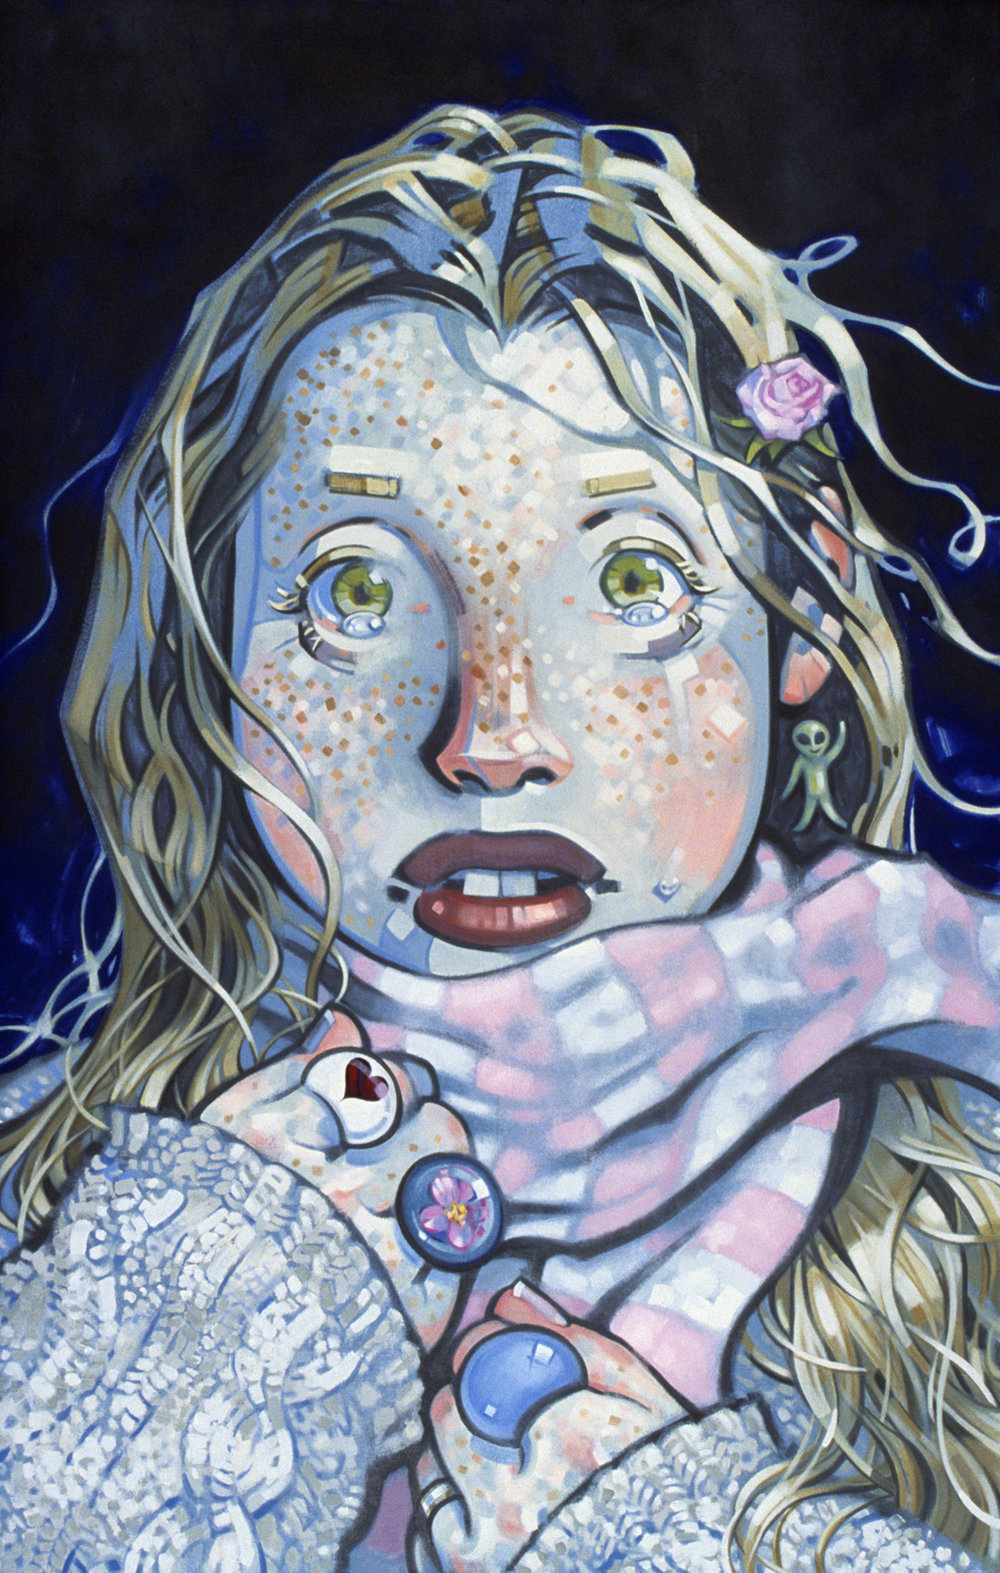 Teardrops, 2002, oil on canvas, 55 x 35.5  inches, private collection